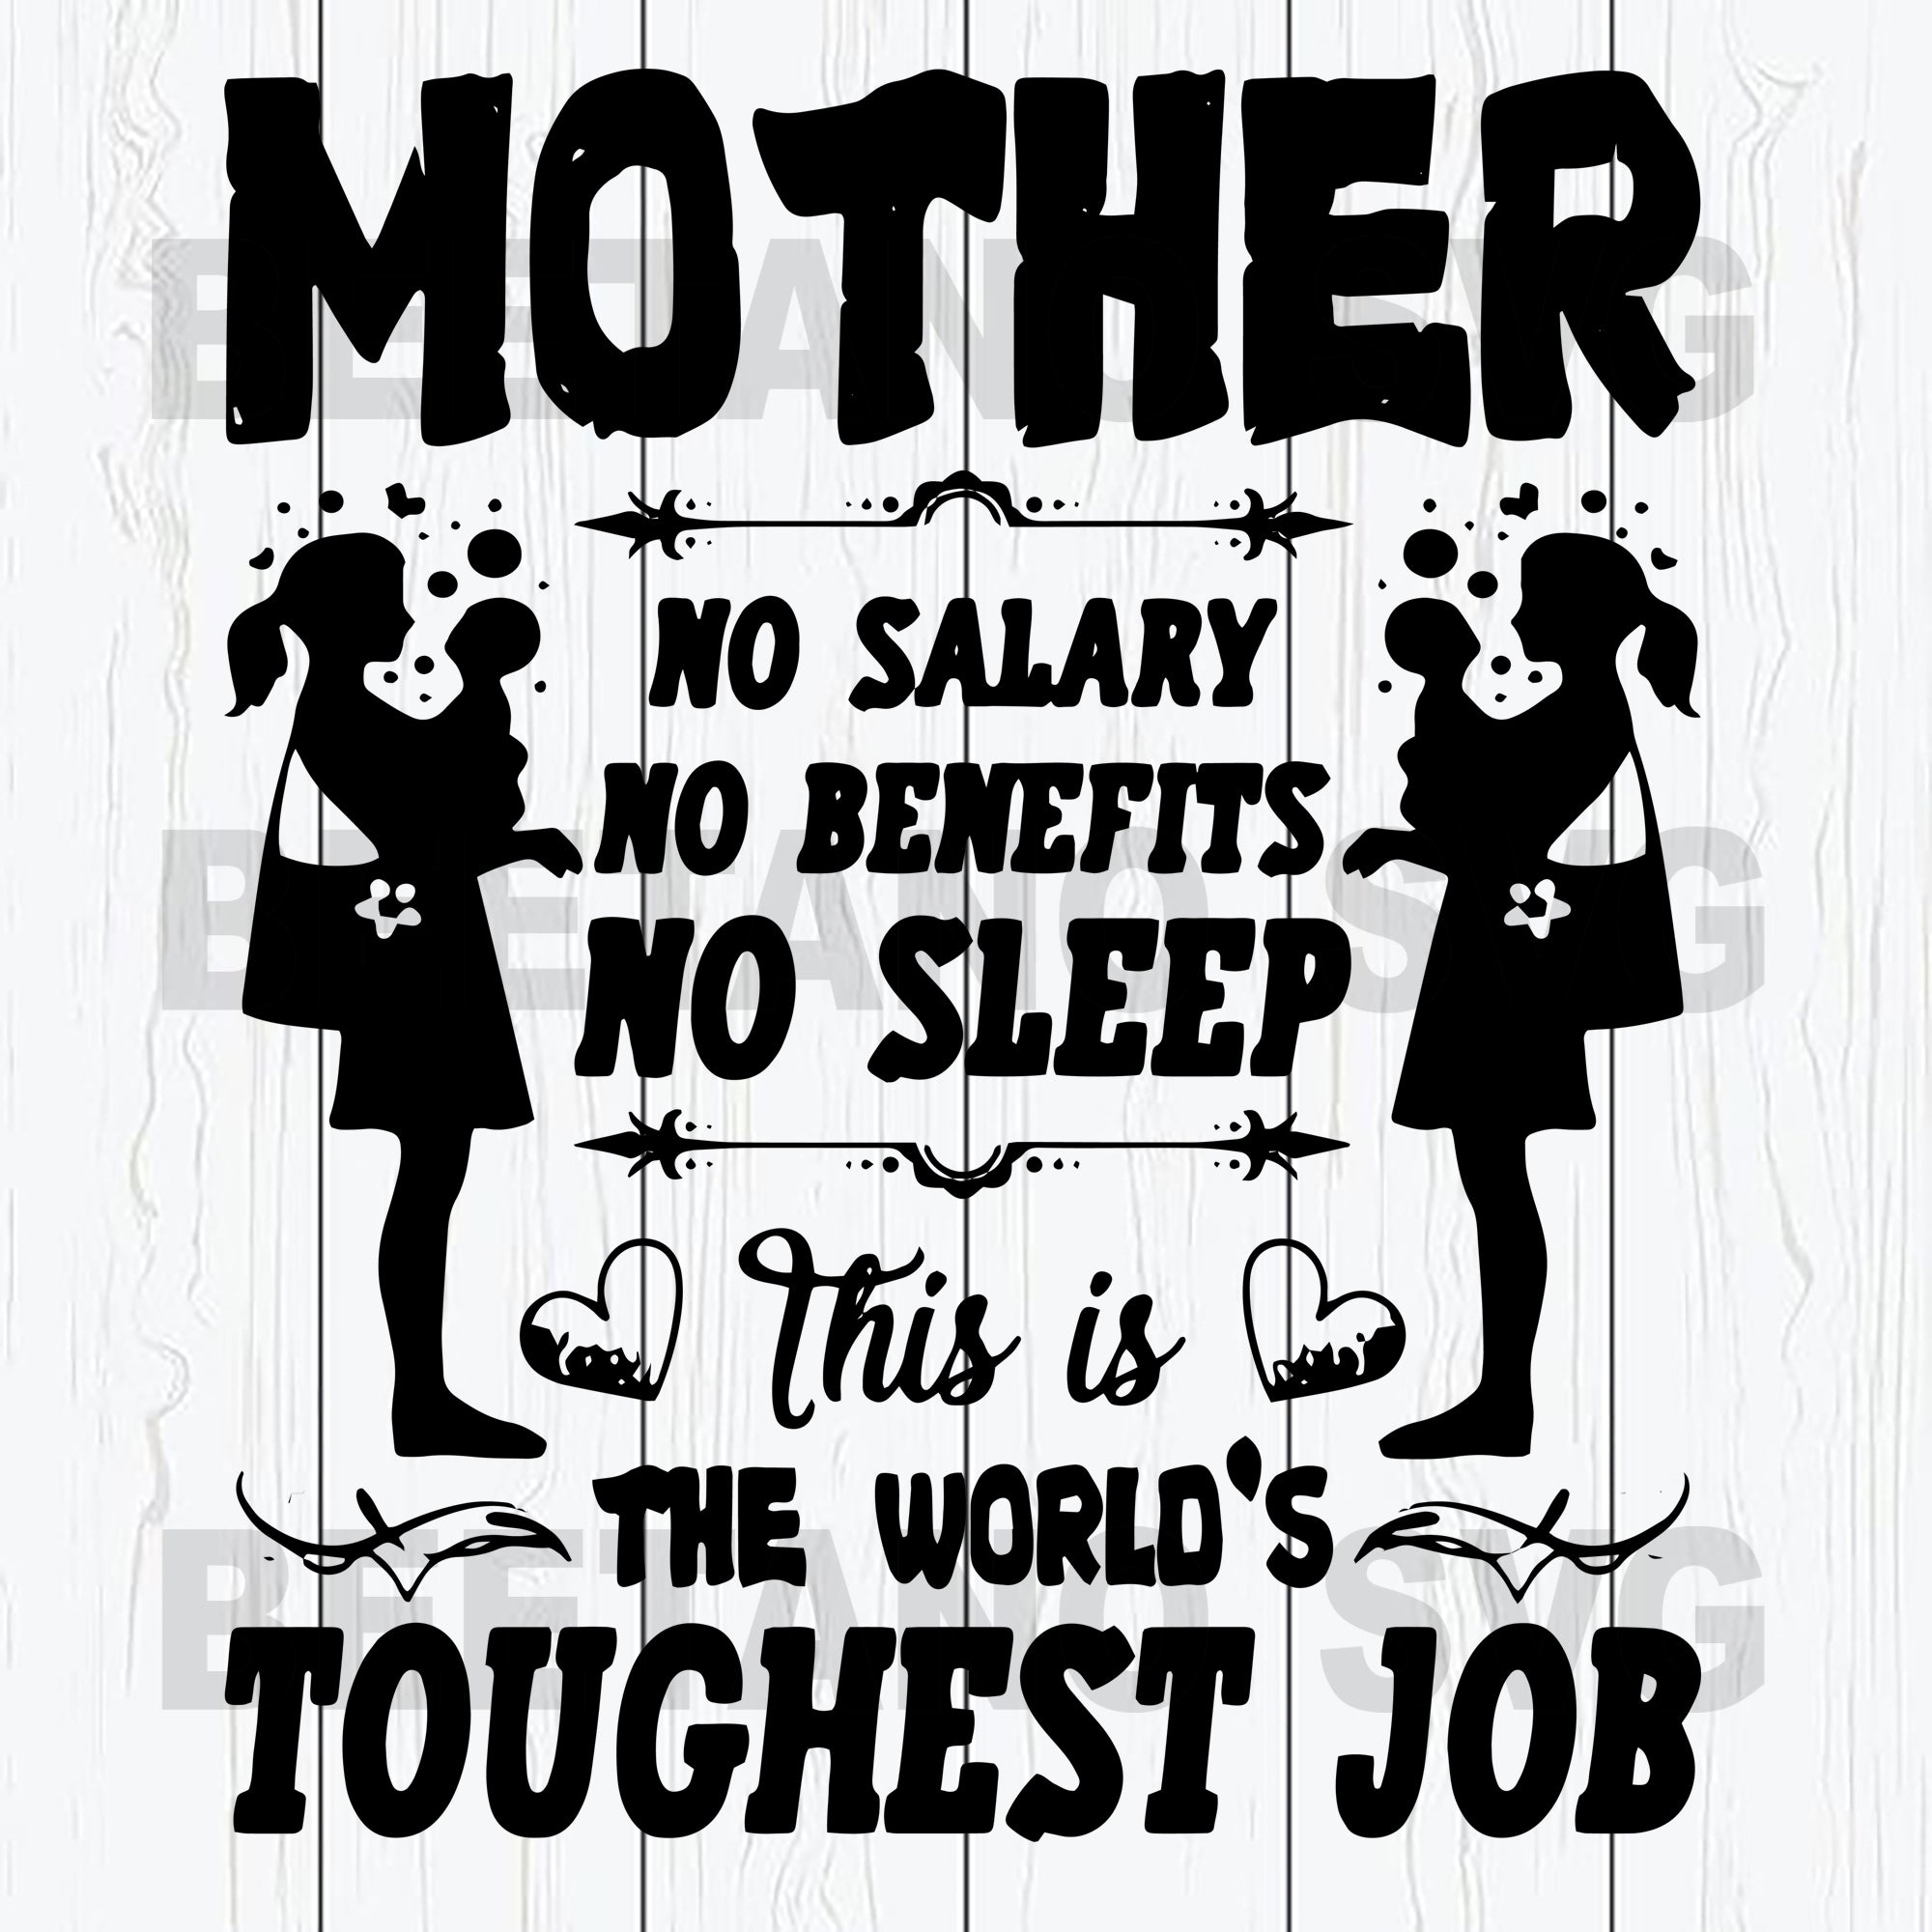 Mother No Salary No Benefits No Sleep The World's Toughest Job Svg Files